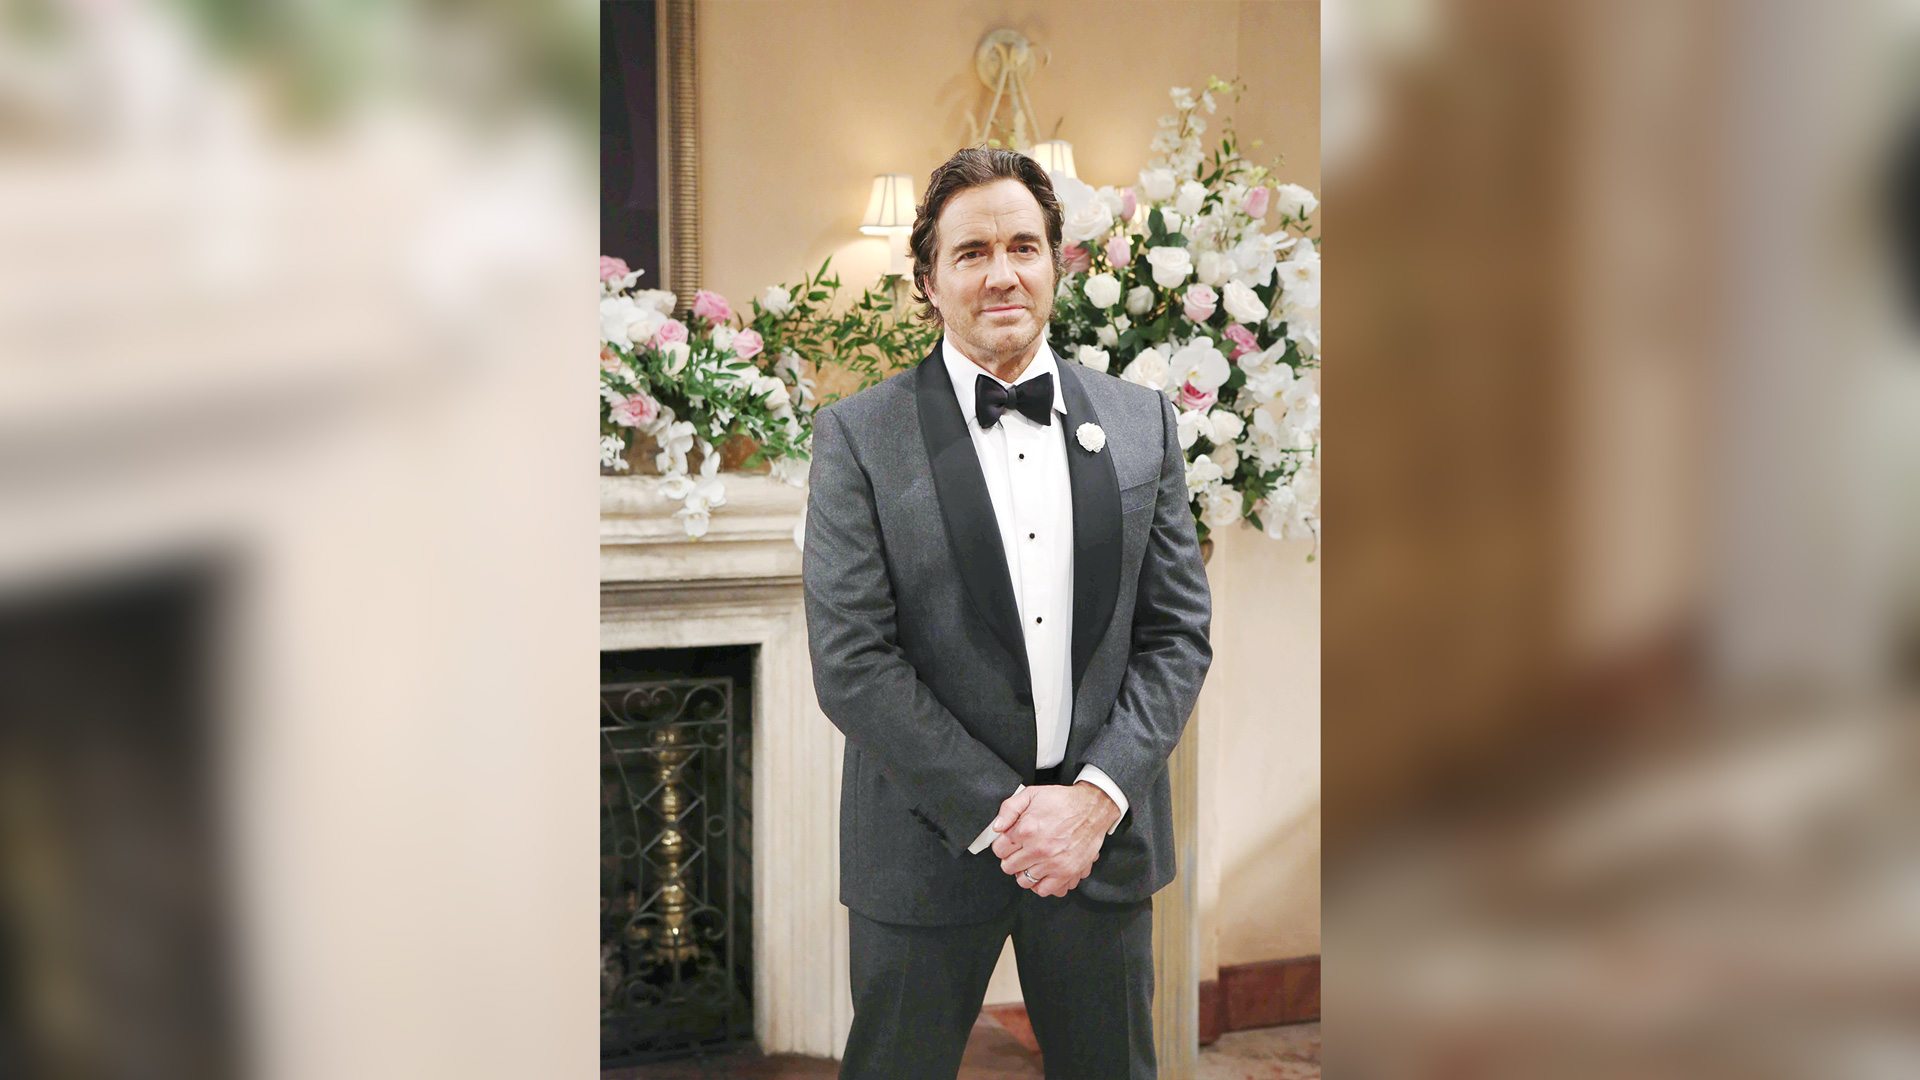 Ridge Forrester (Thorsten Kaye) stands tall in this handsome tuxedo.